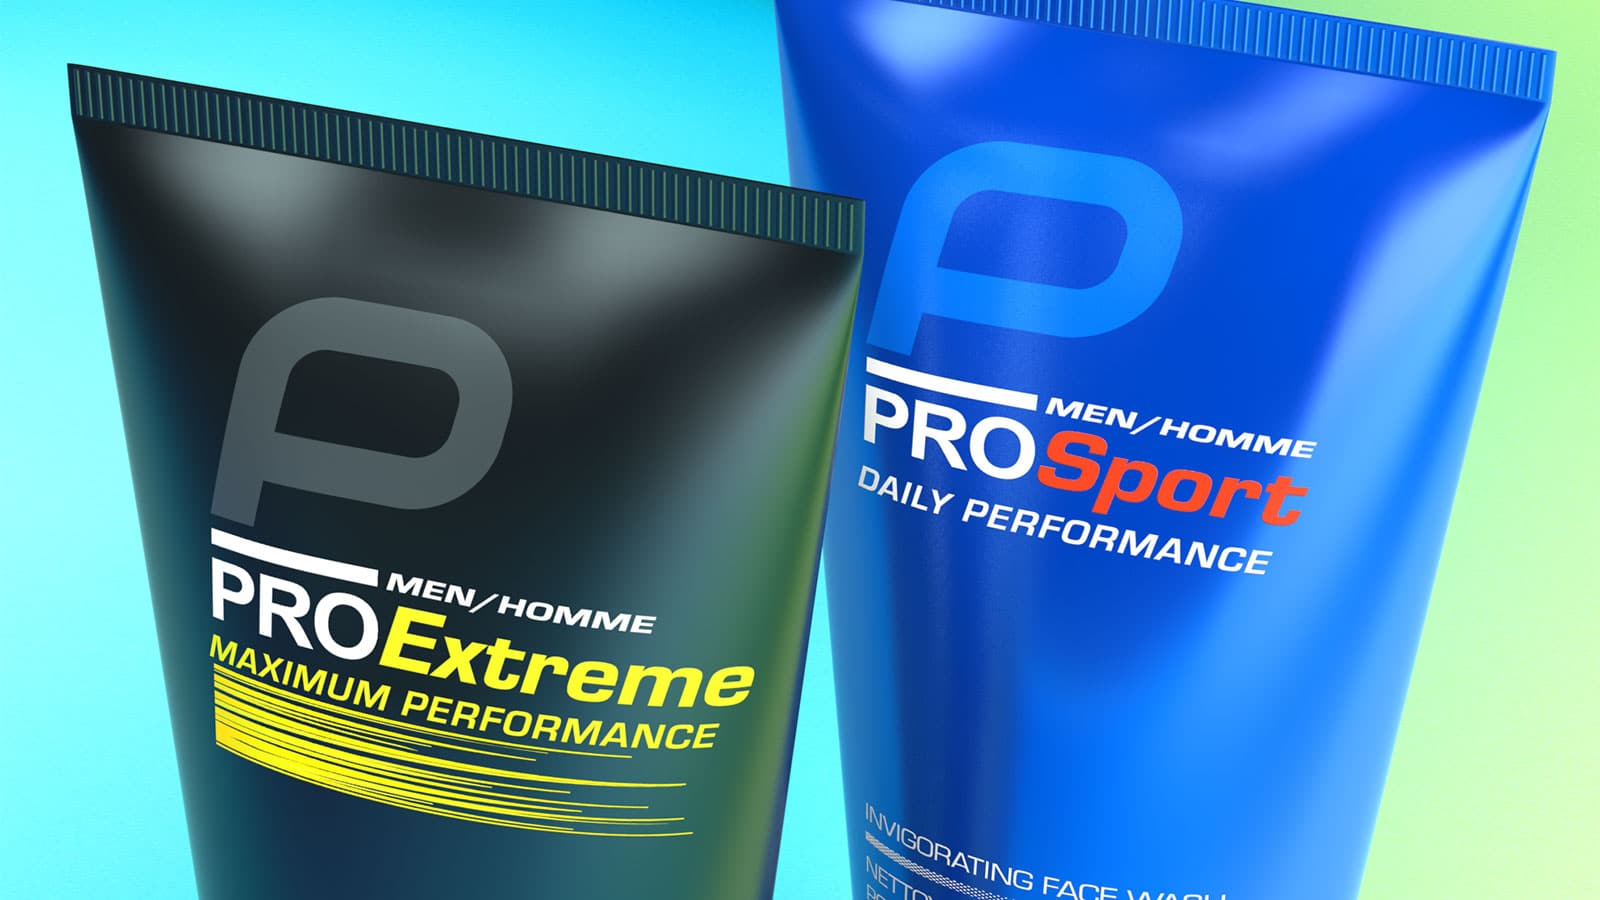 Avon Pro Sport and Pro Extreme packaging design